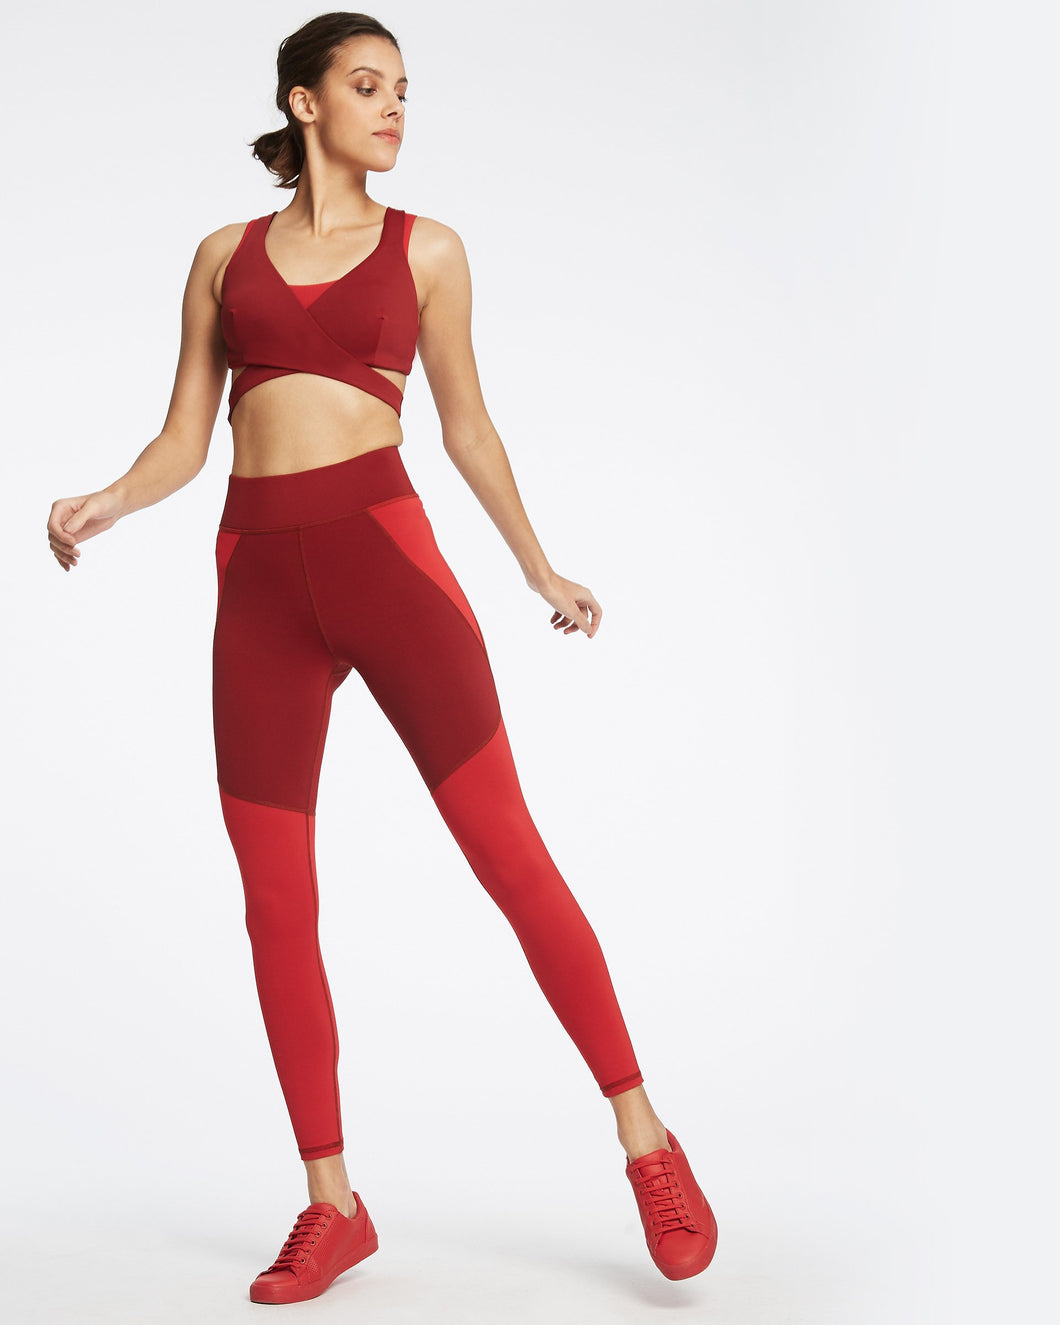 MICHI Tidal Legging - Fire Red